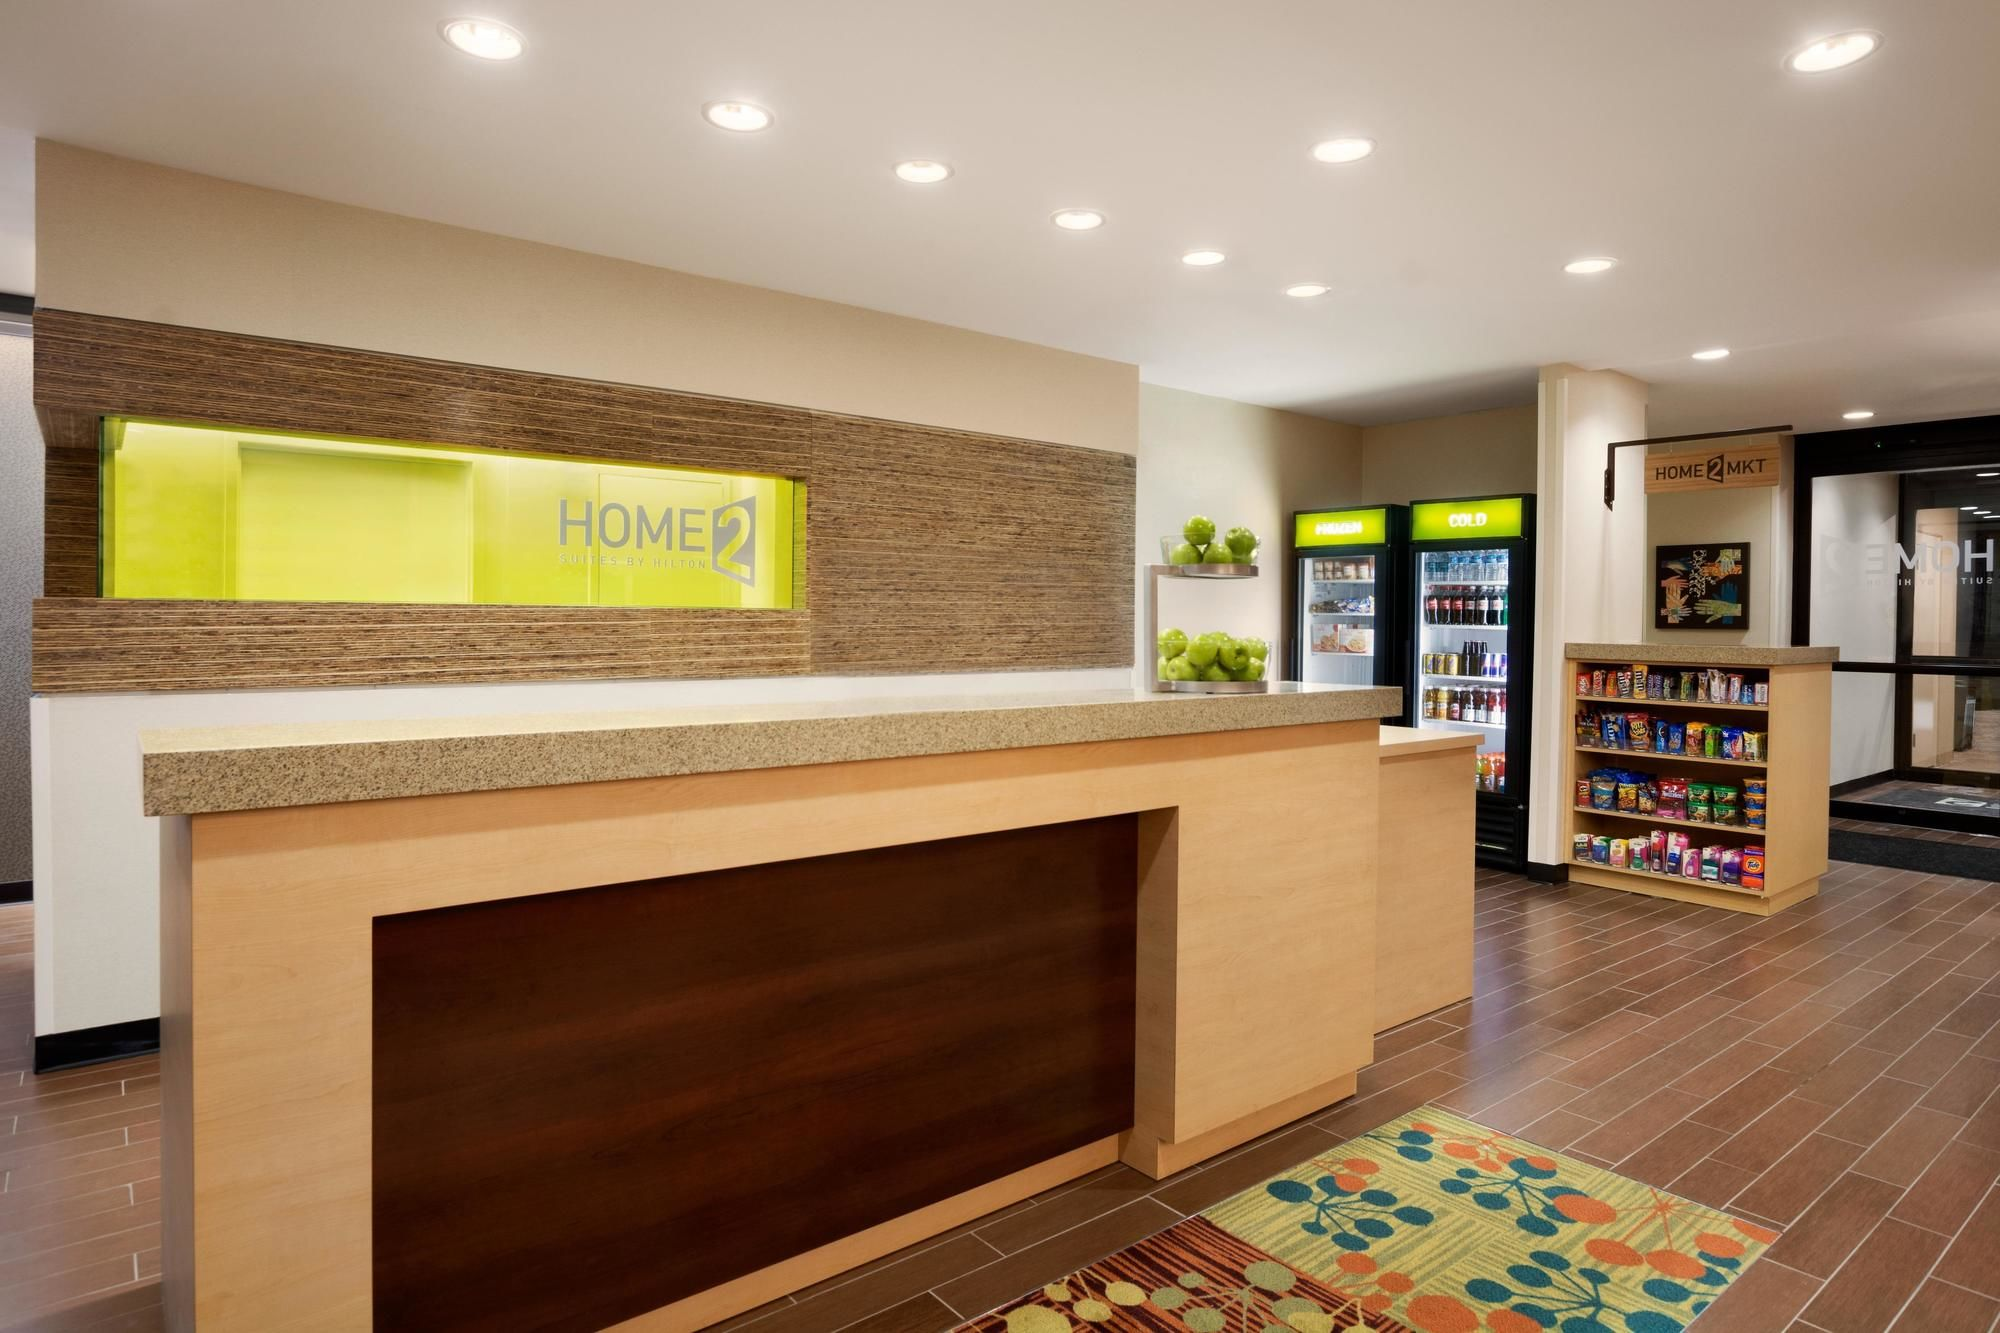 Rochester Hotel Coupons for Rochester, New York - FreeHotelCoupons.com